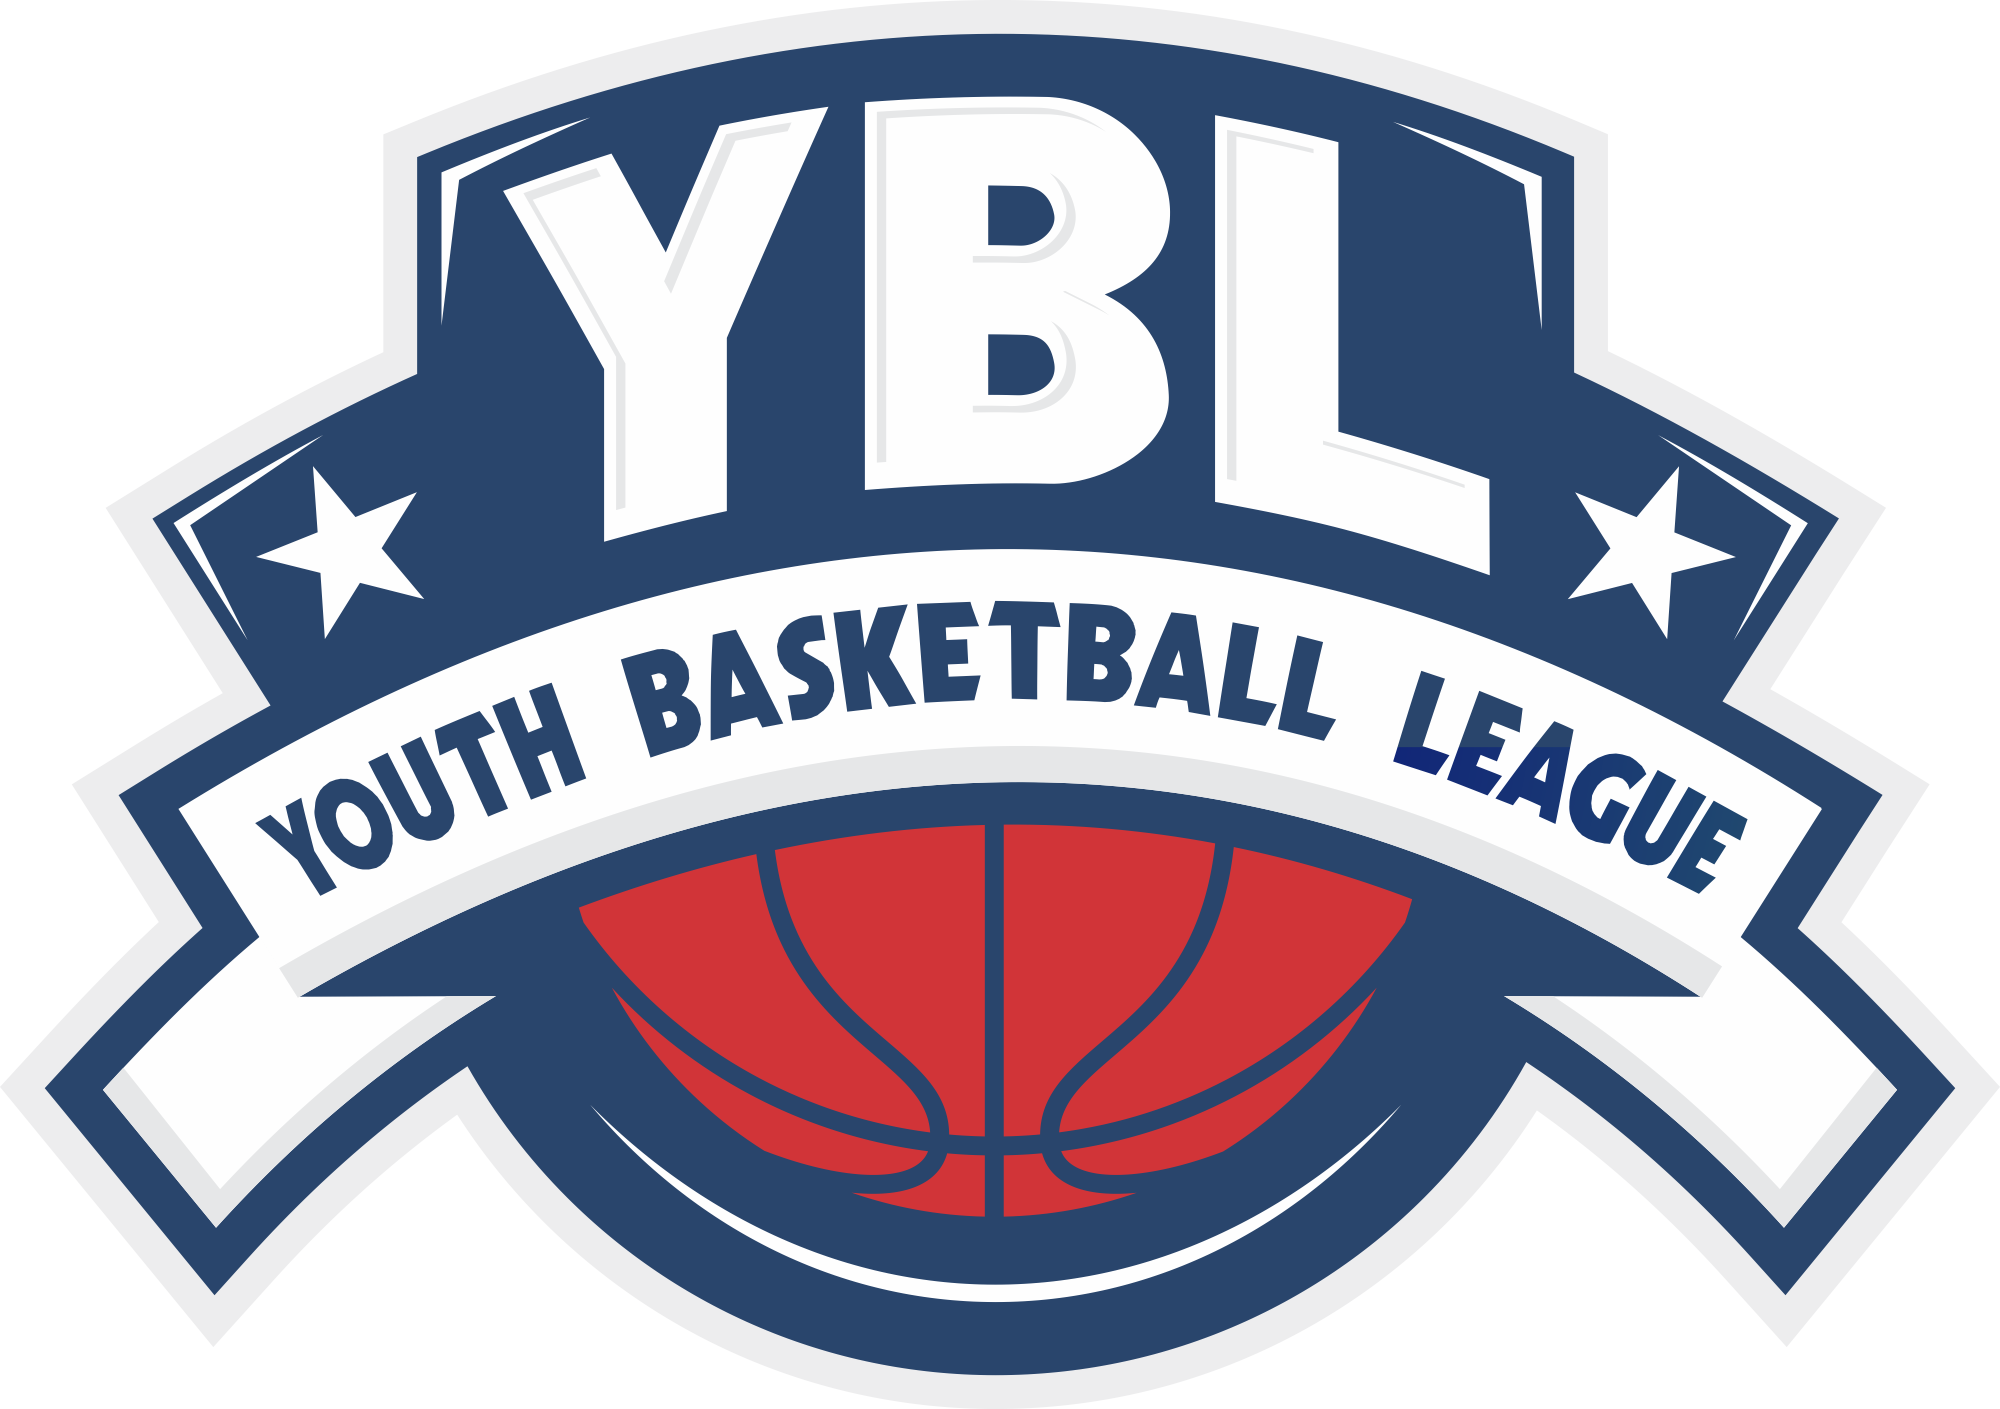 YOUTH BASKETBALL LEAGUE AT WBHS BEGINS 10/20